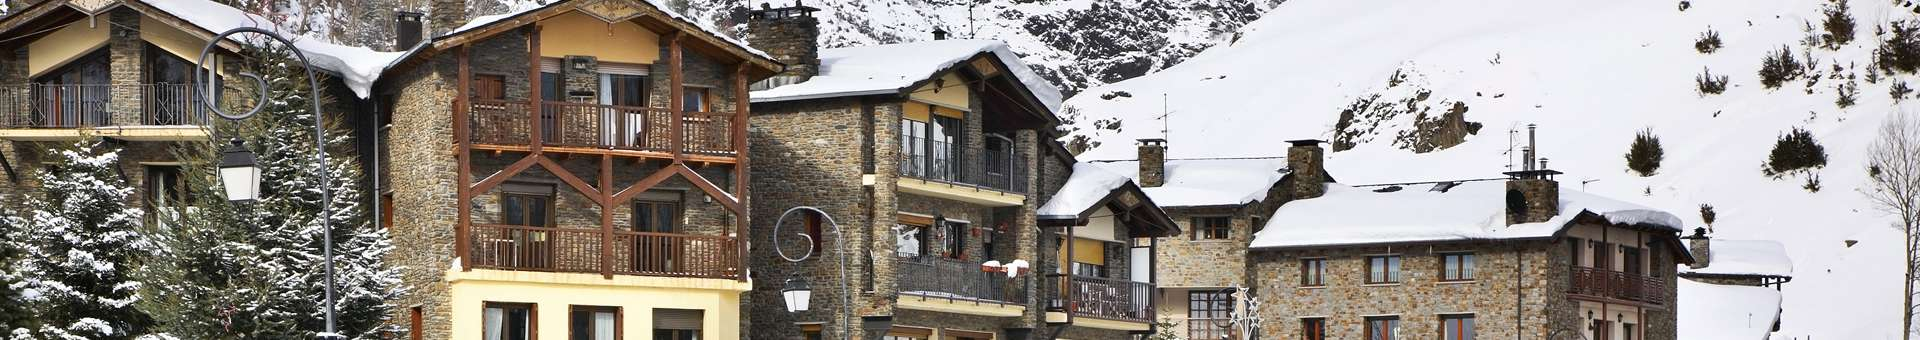 Search Whois information of domain names in Andorra